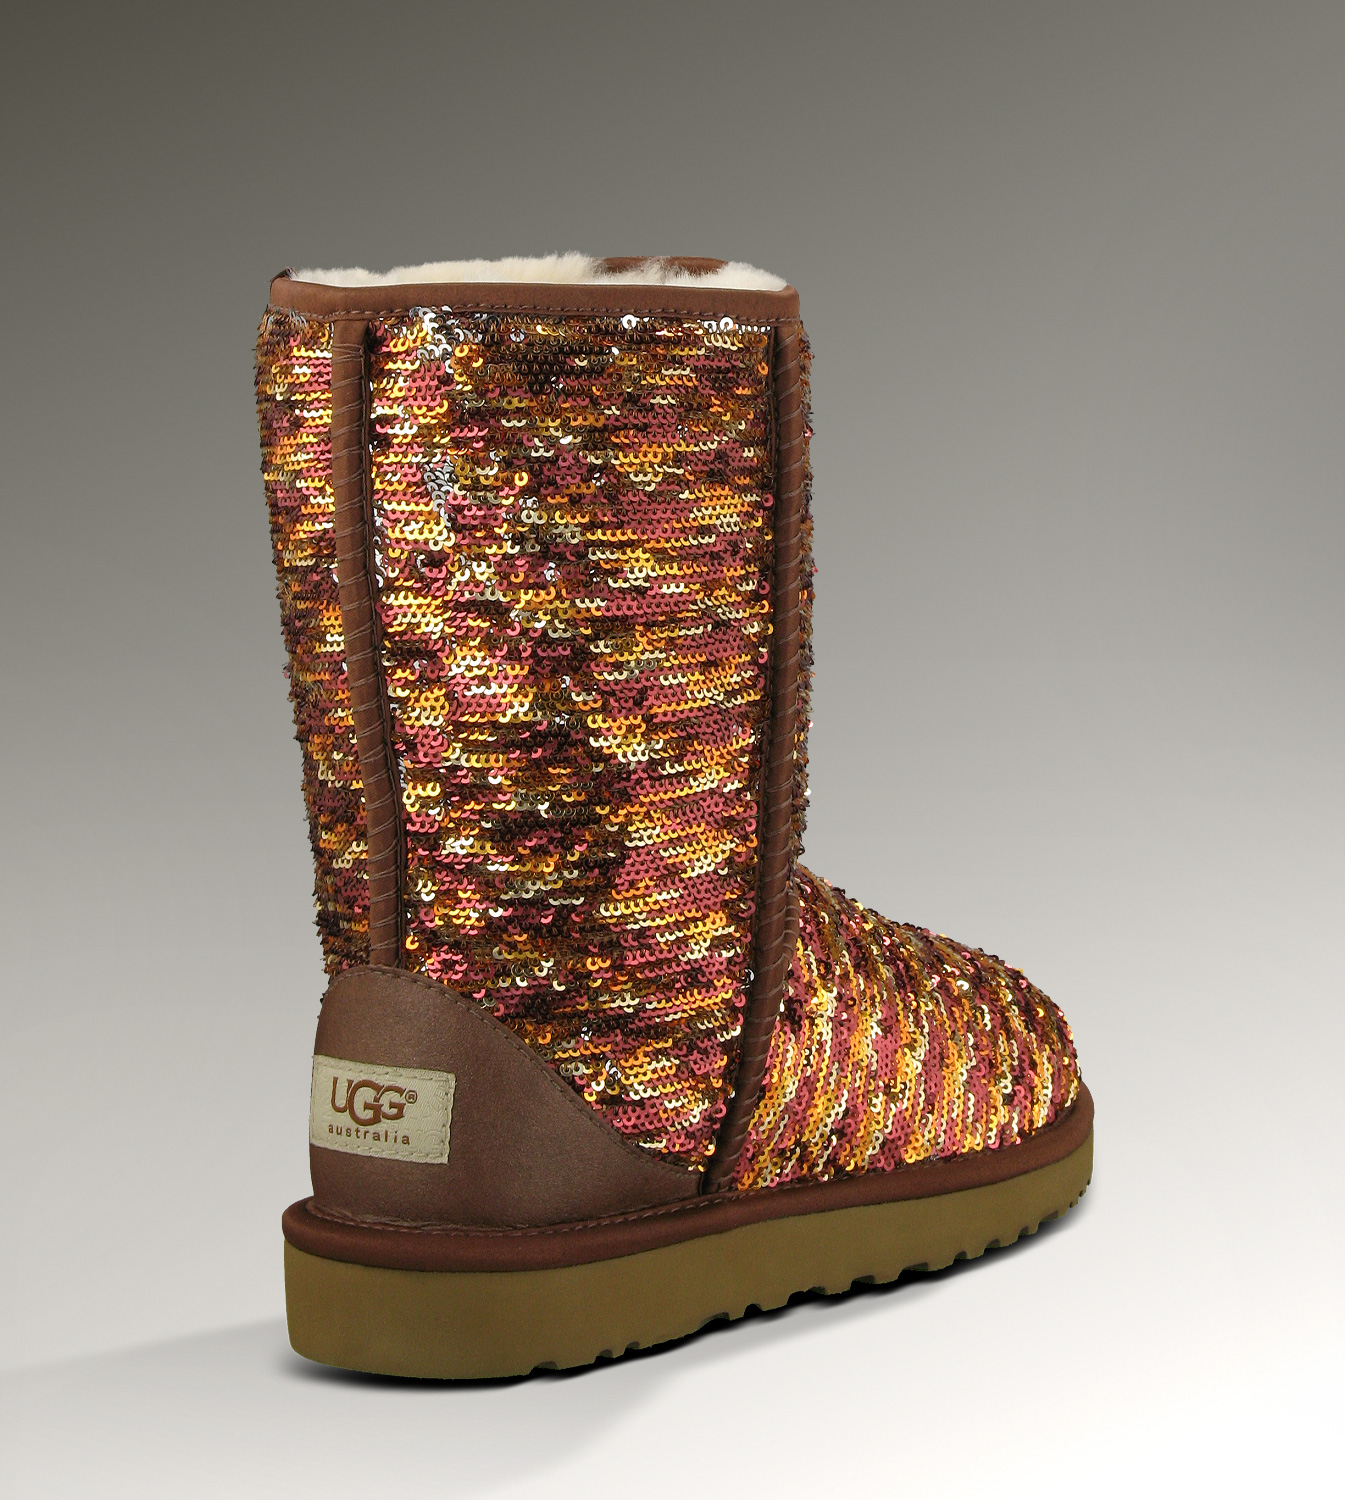 UGG Classic Short Sparkles 1002766 Autumn Boots